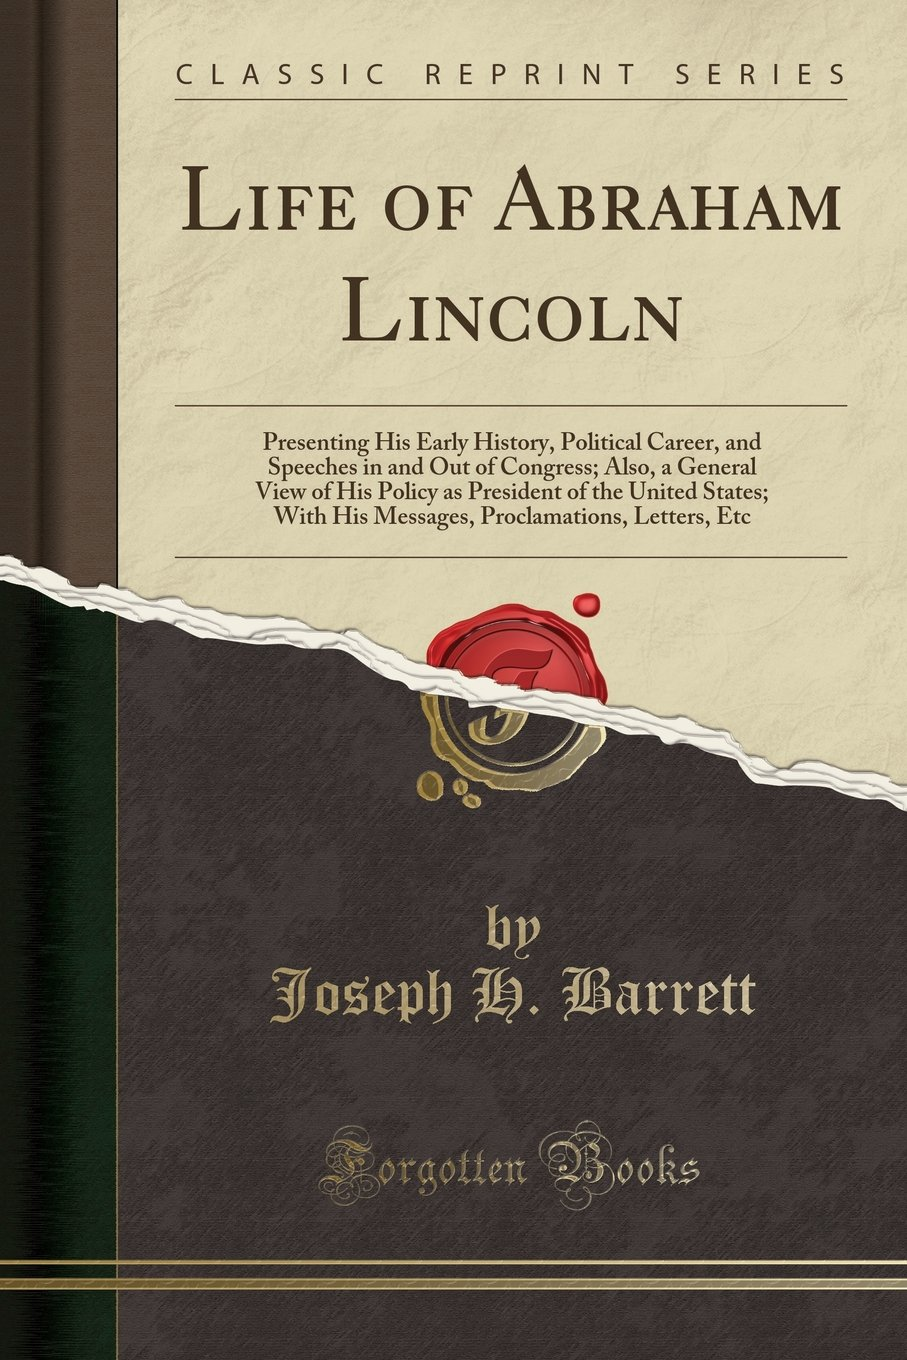 Life of Abraham Lincoln: Presenting His Early History, Political Career, and Speeches in and Out of Congress; Also, a General View of His Policy as ... Proclamations, Letters, Etc (Classic Reprint) pdf epub